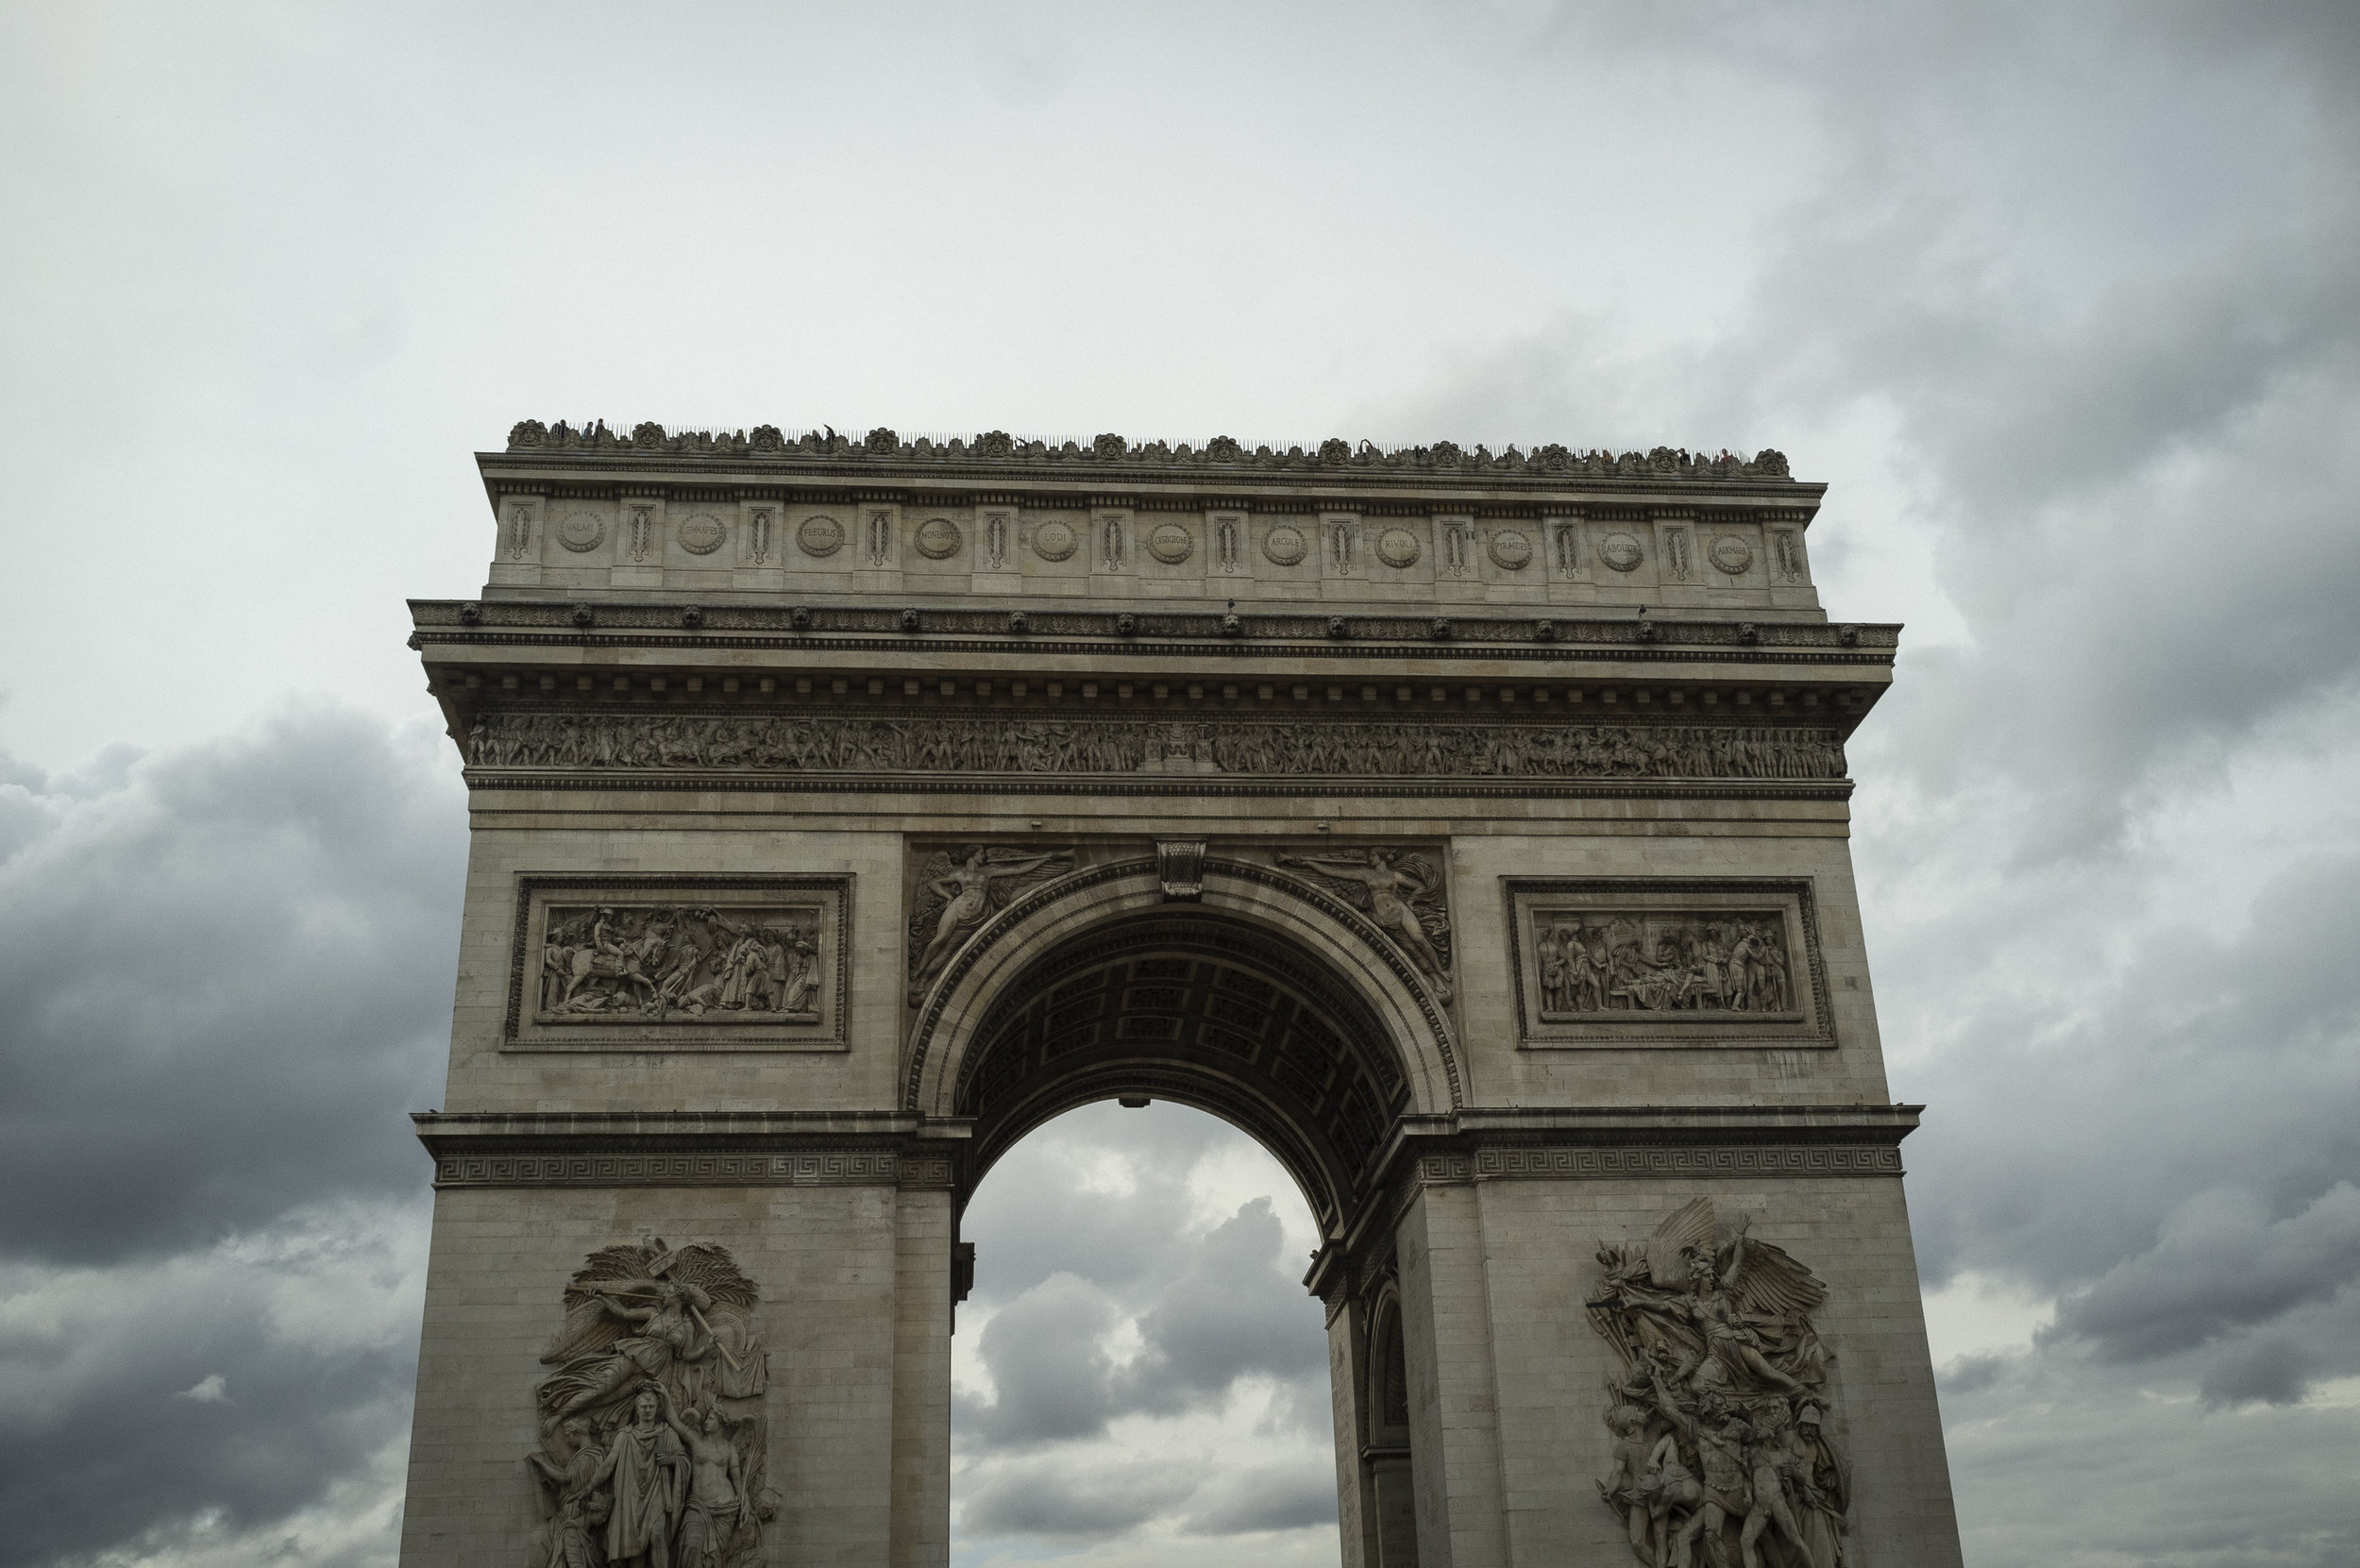 paris_vf-34.jpg